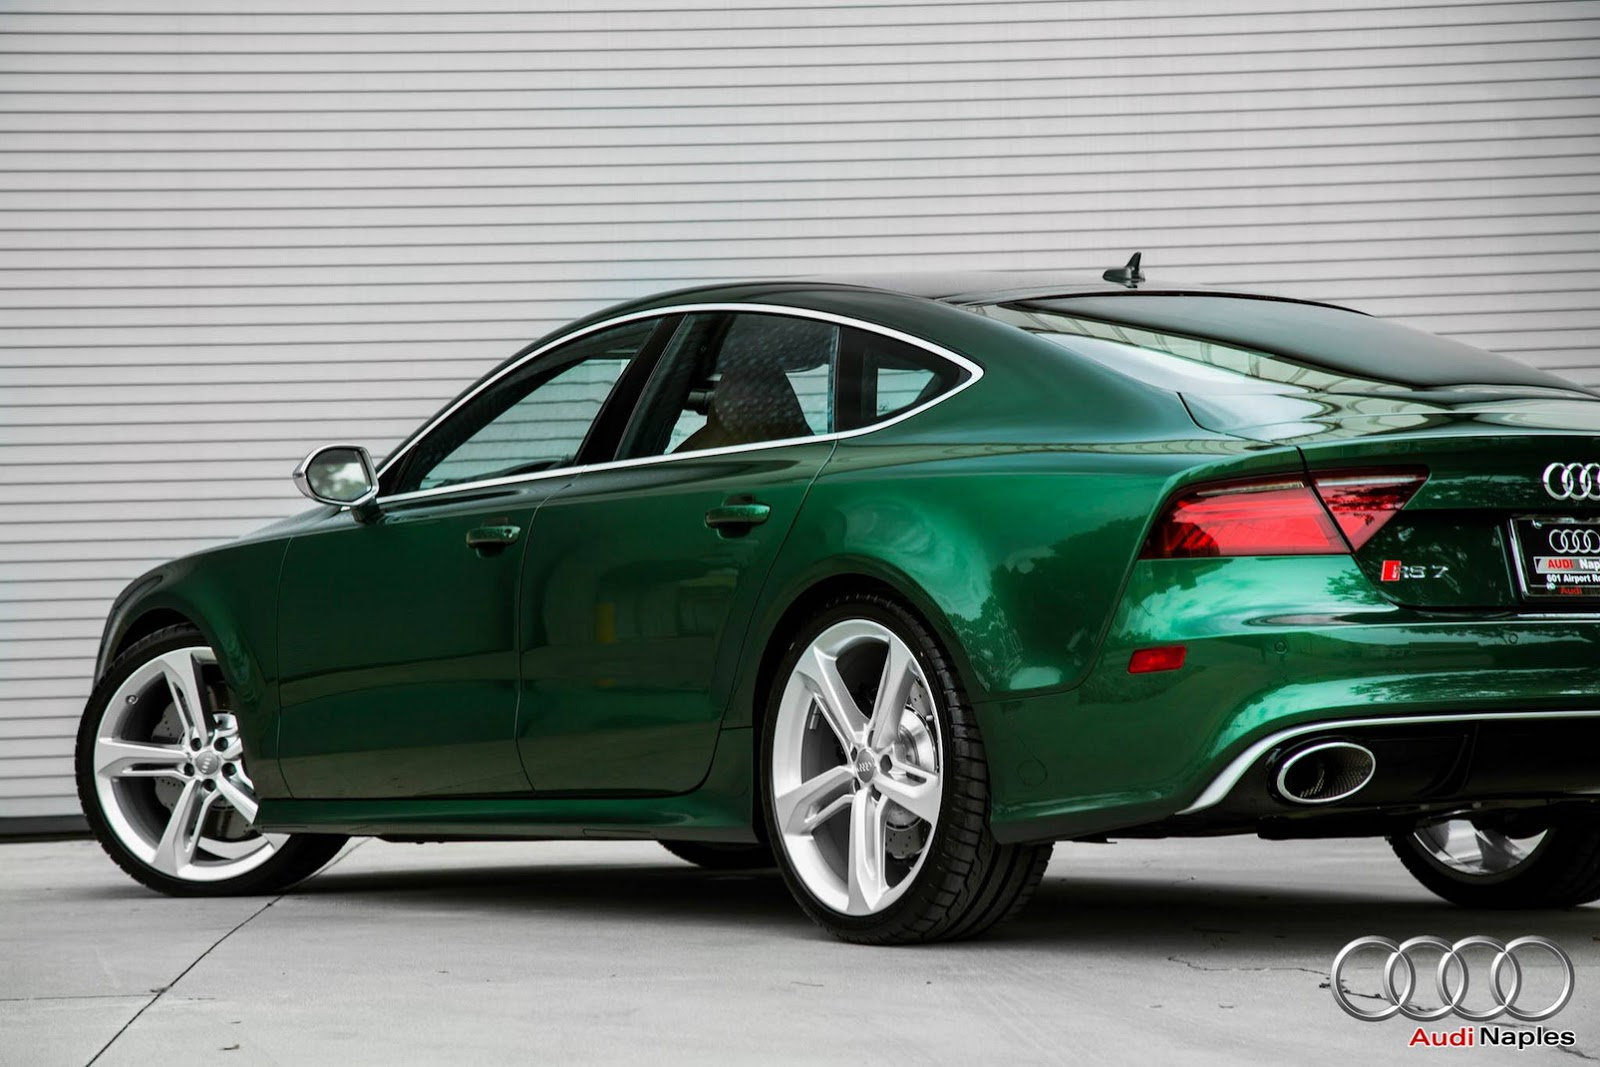 Verdant Green Audi Rs7 For Sale In Florida Carscoops